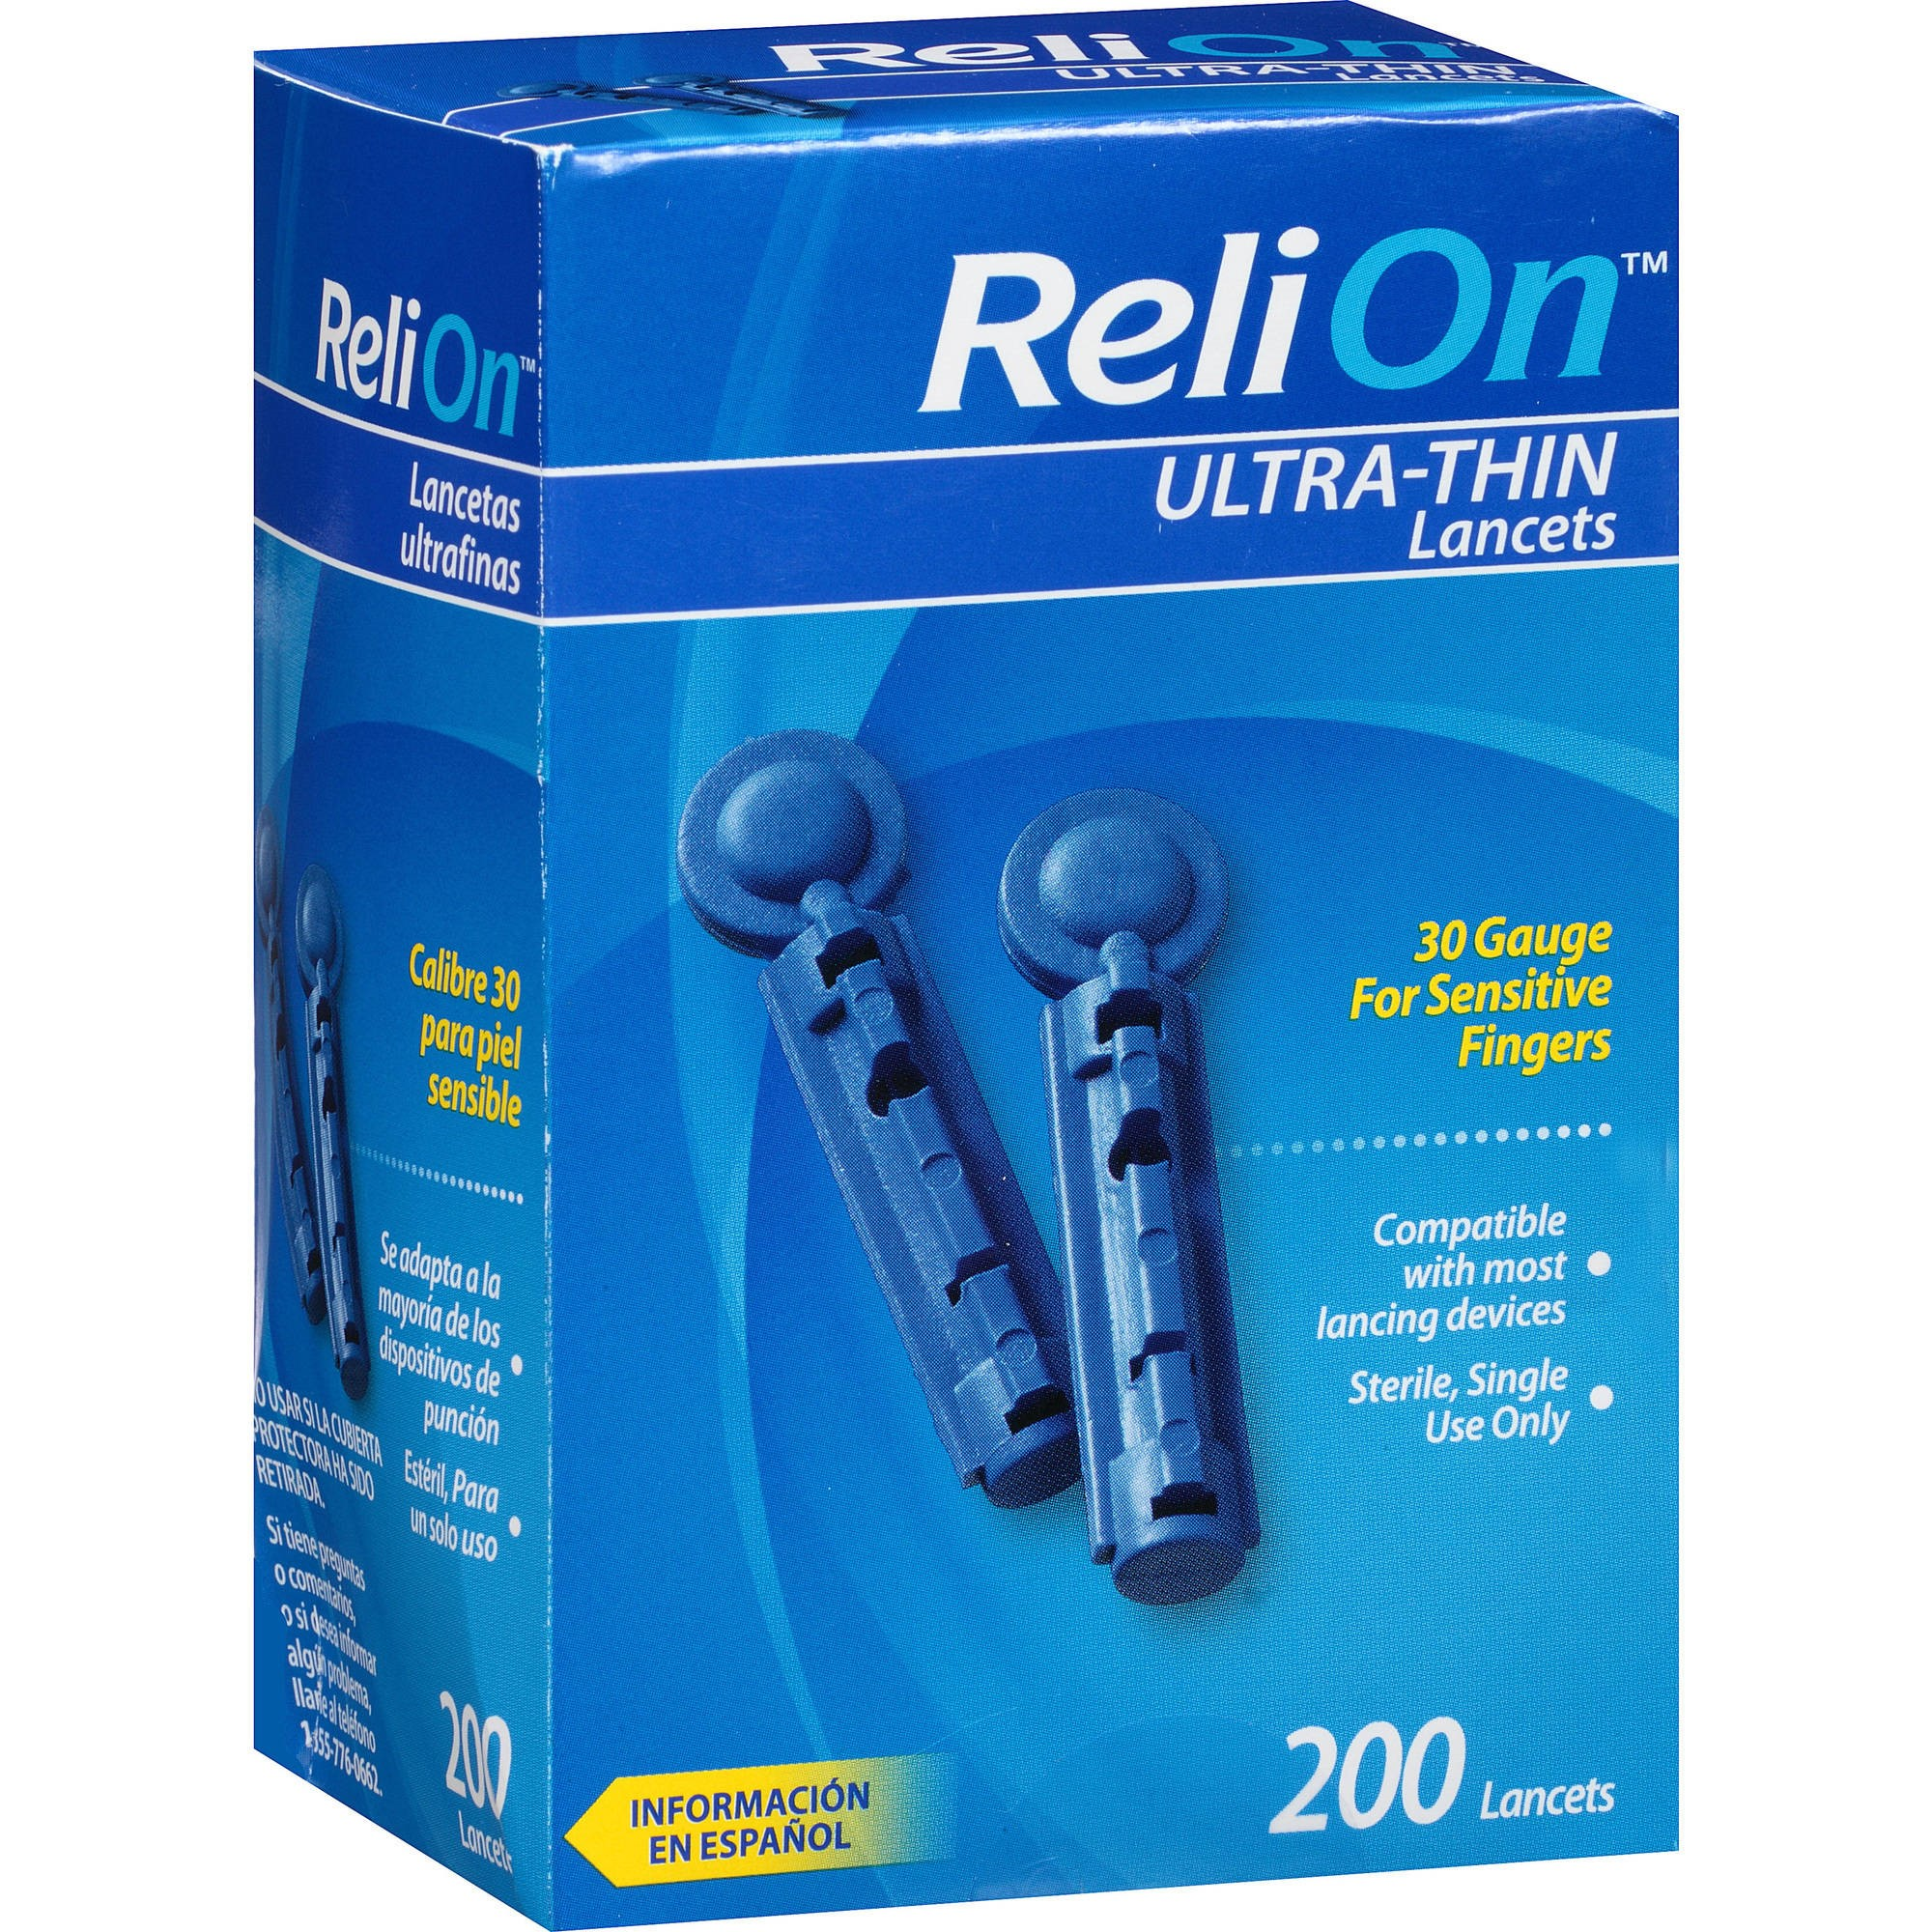 ReliOn Ultra-Thin Lancets, 30G, 200 Ct